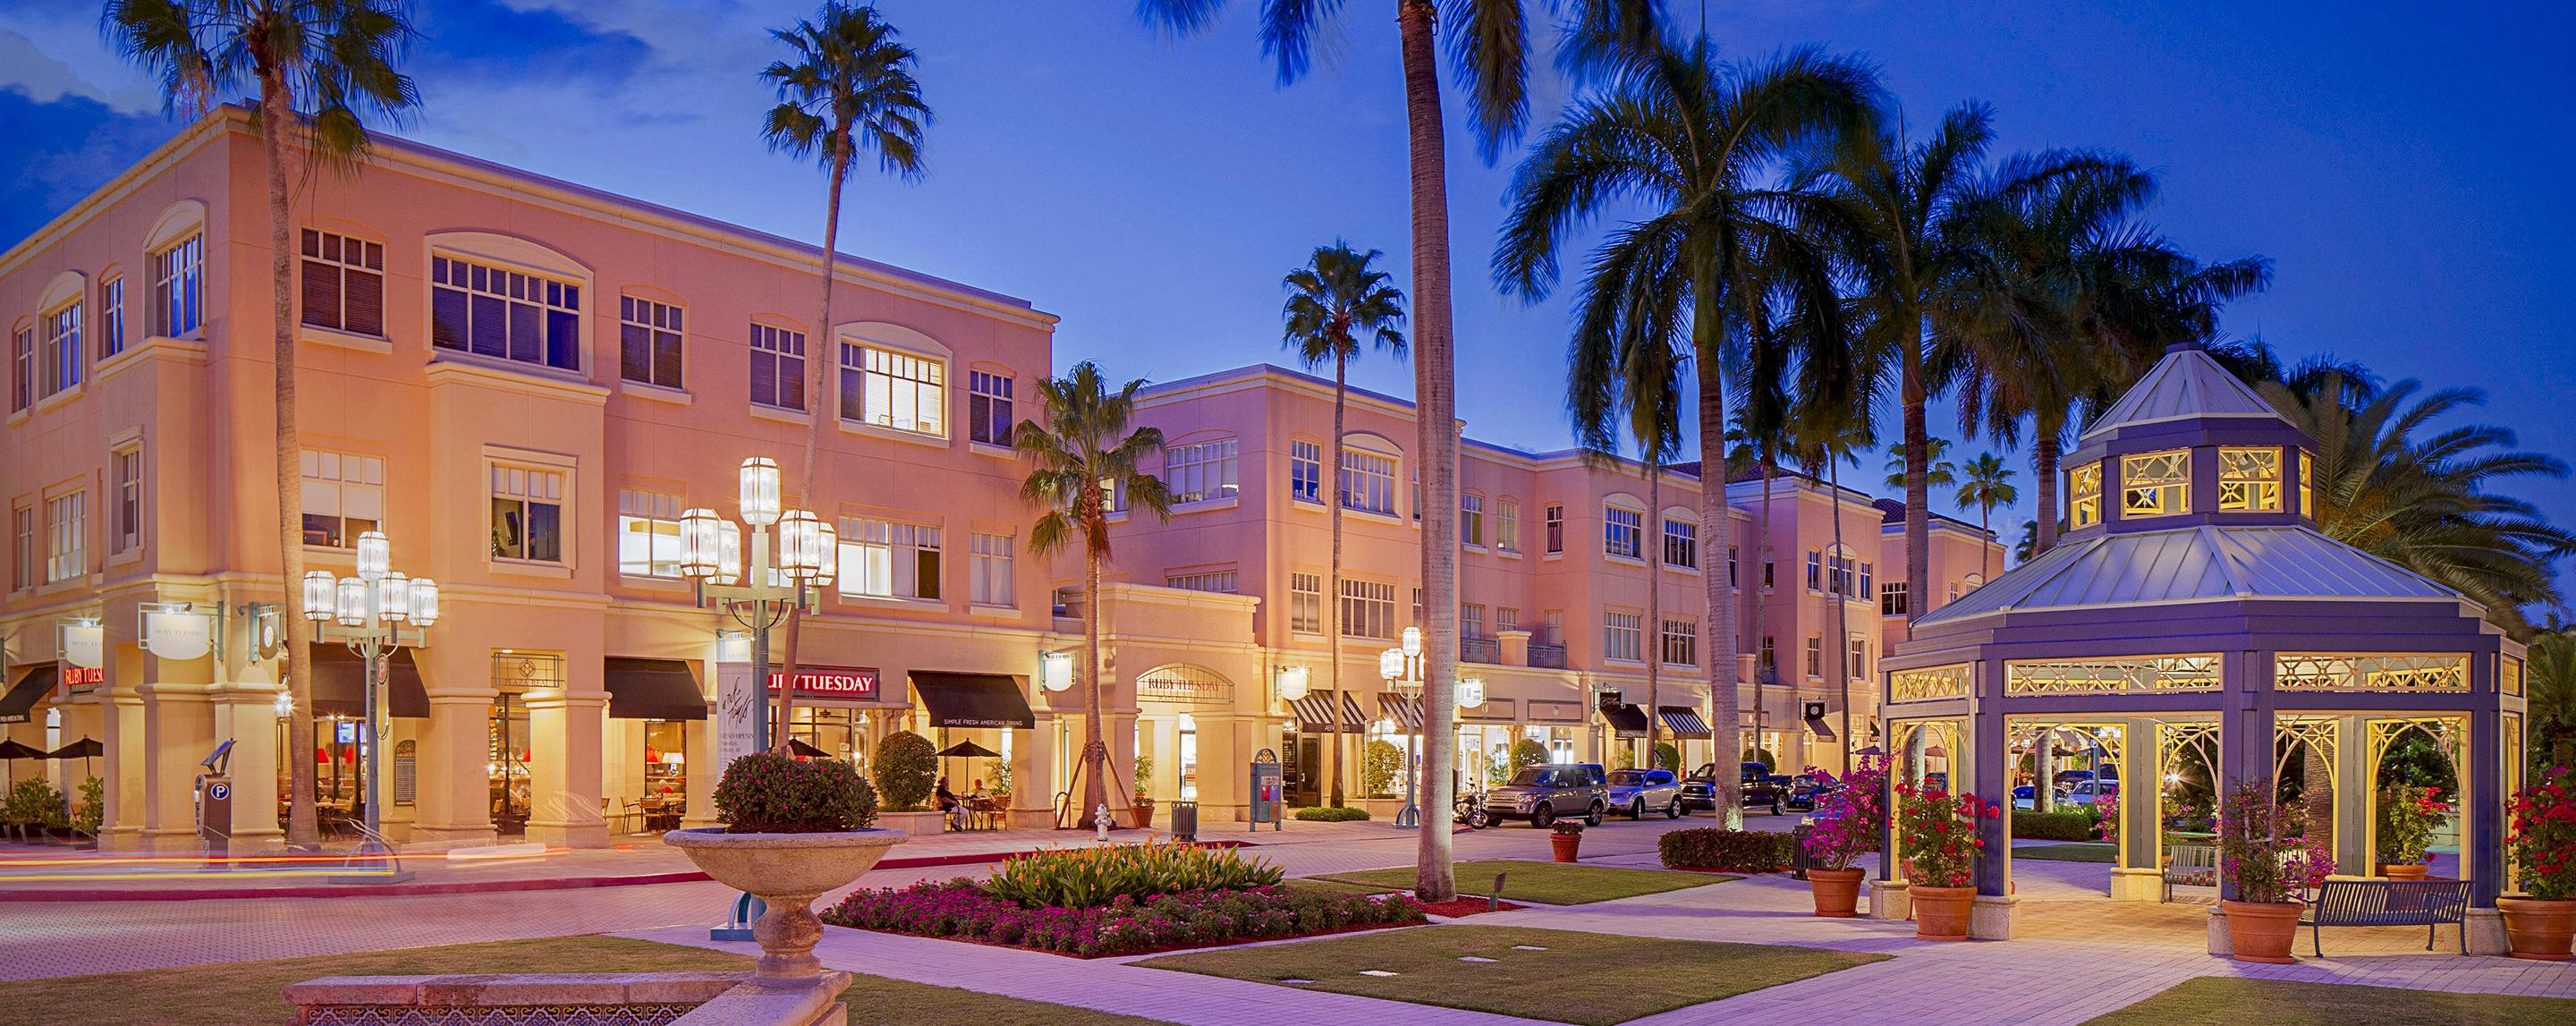 Storefronts and lamp posts line the exterior of Mizner Park at night illuminating the surrounding area.